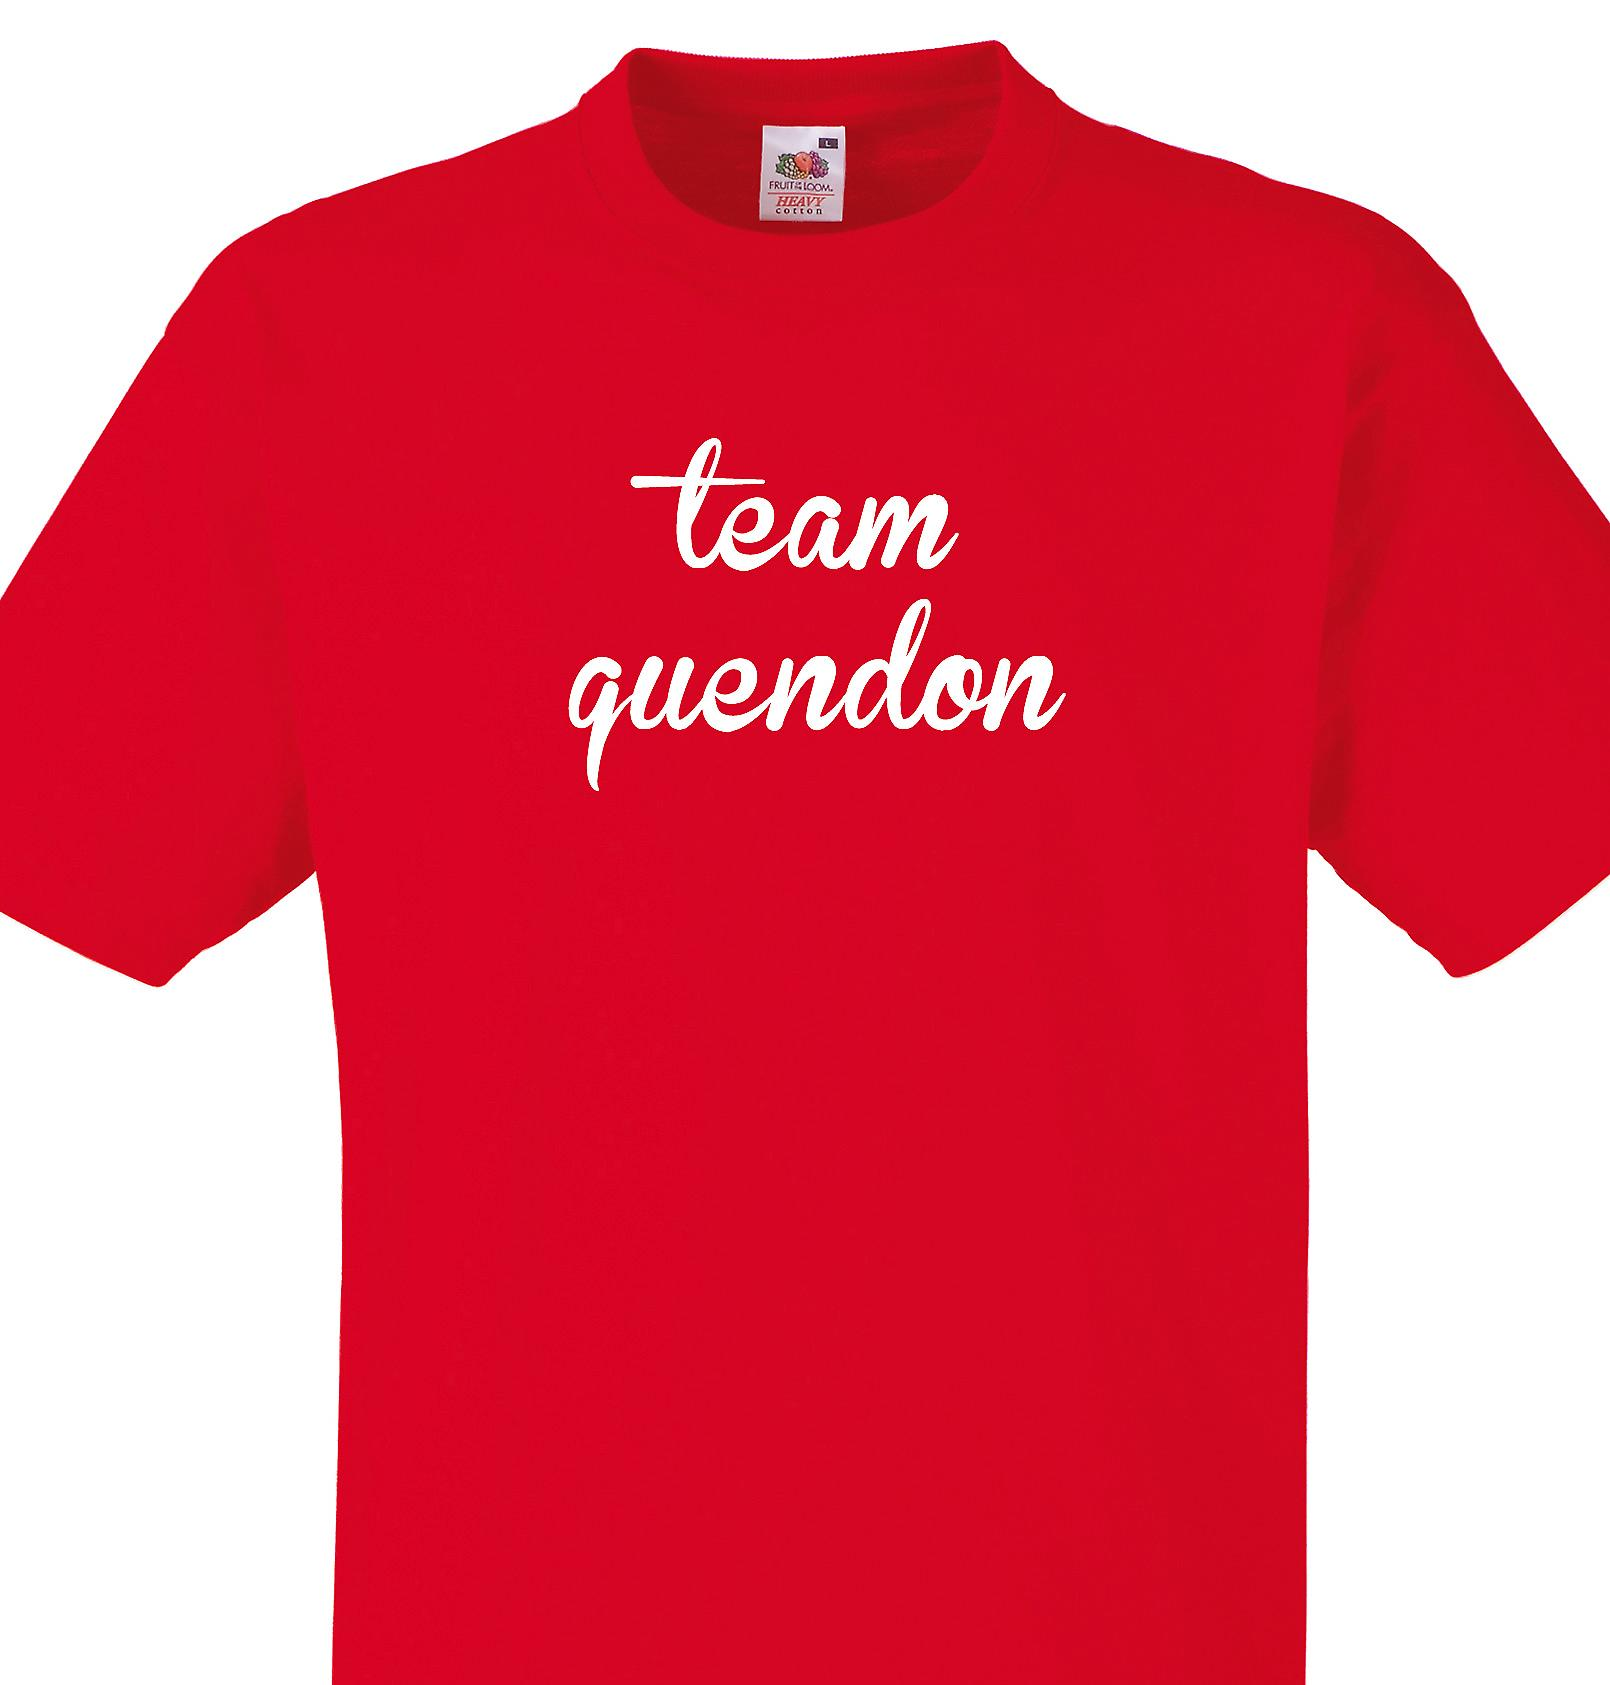 Team Quendon Red T shirt